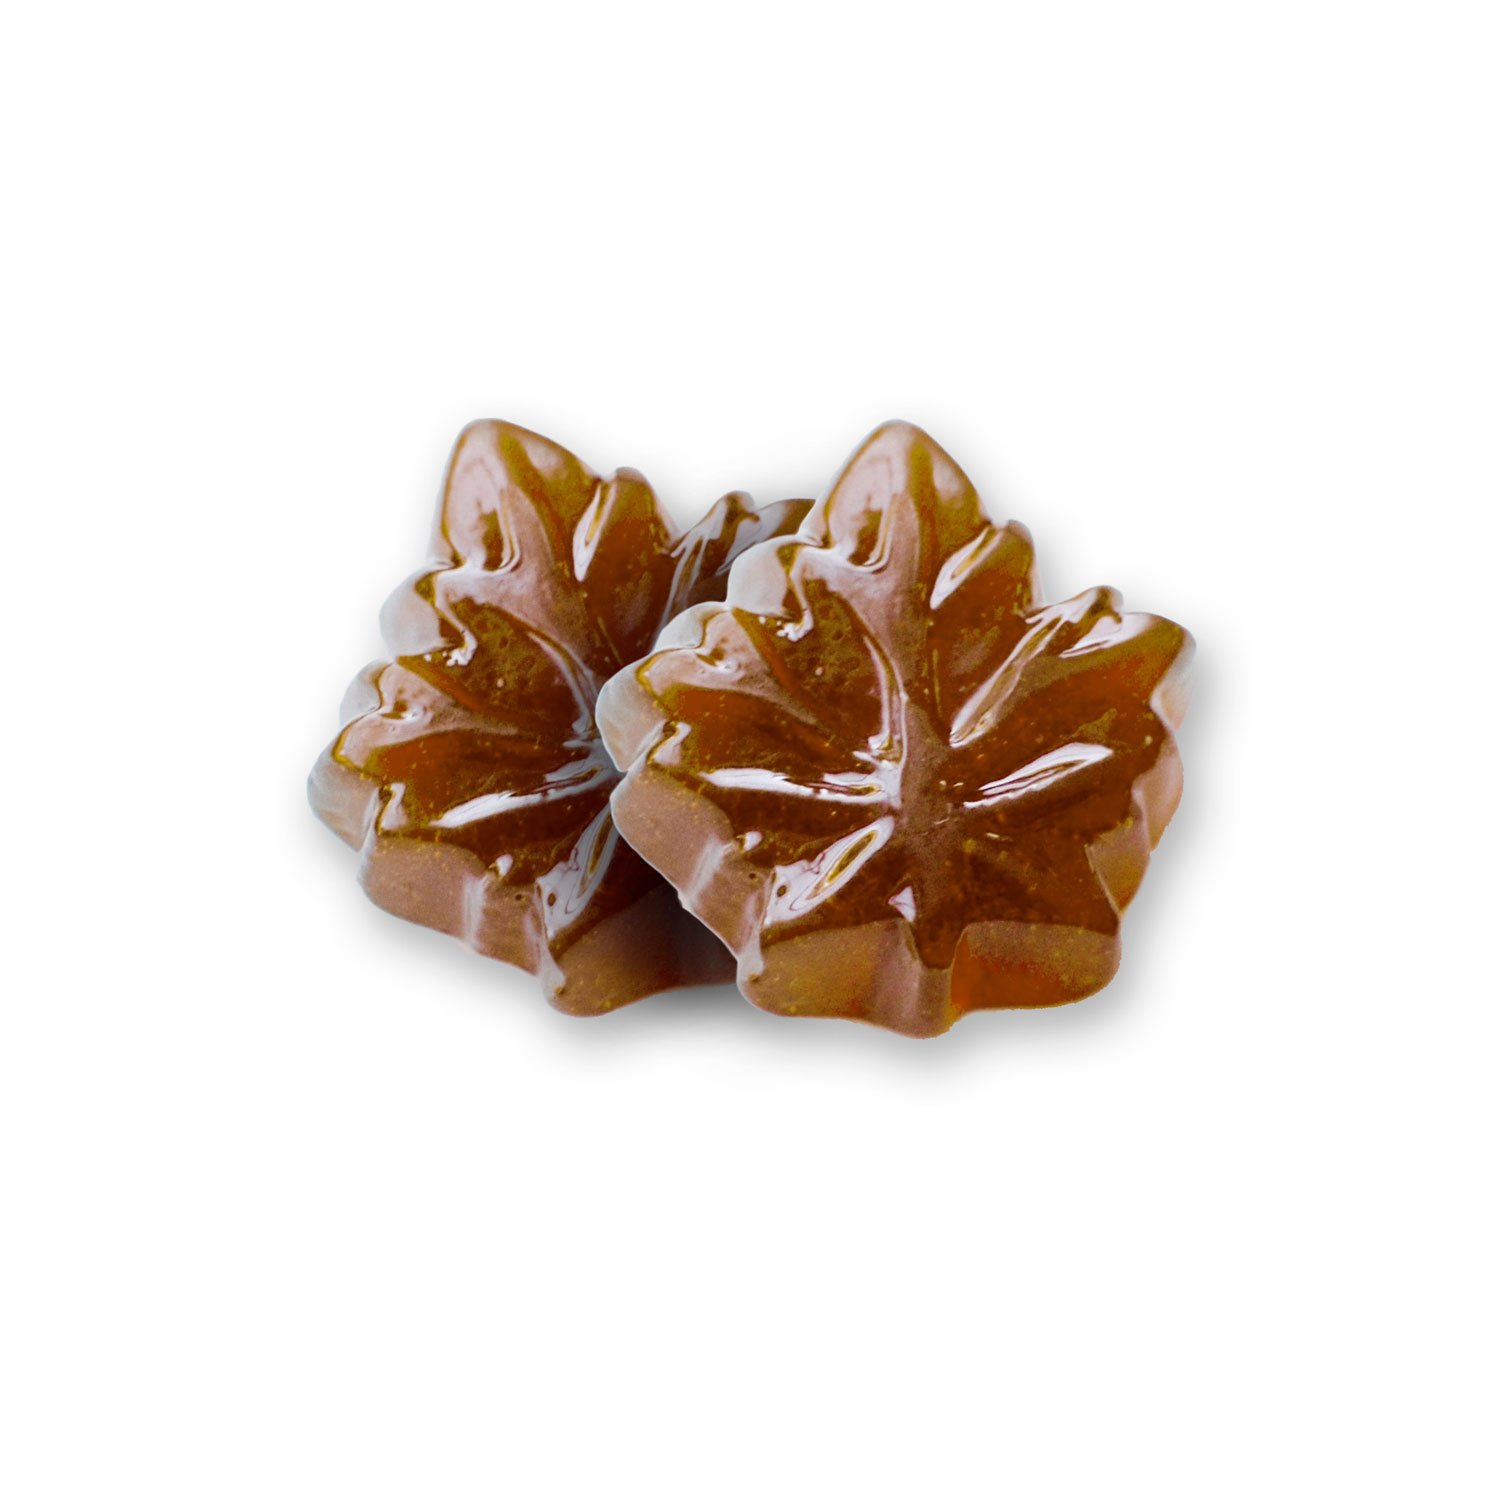 Premium Canadian Maple Sugar Hard Candy Drops Made from Pure Maple Syrup from Canada - Tristan Foods (3-lb)